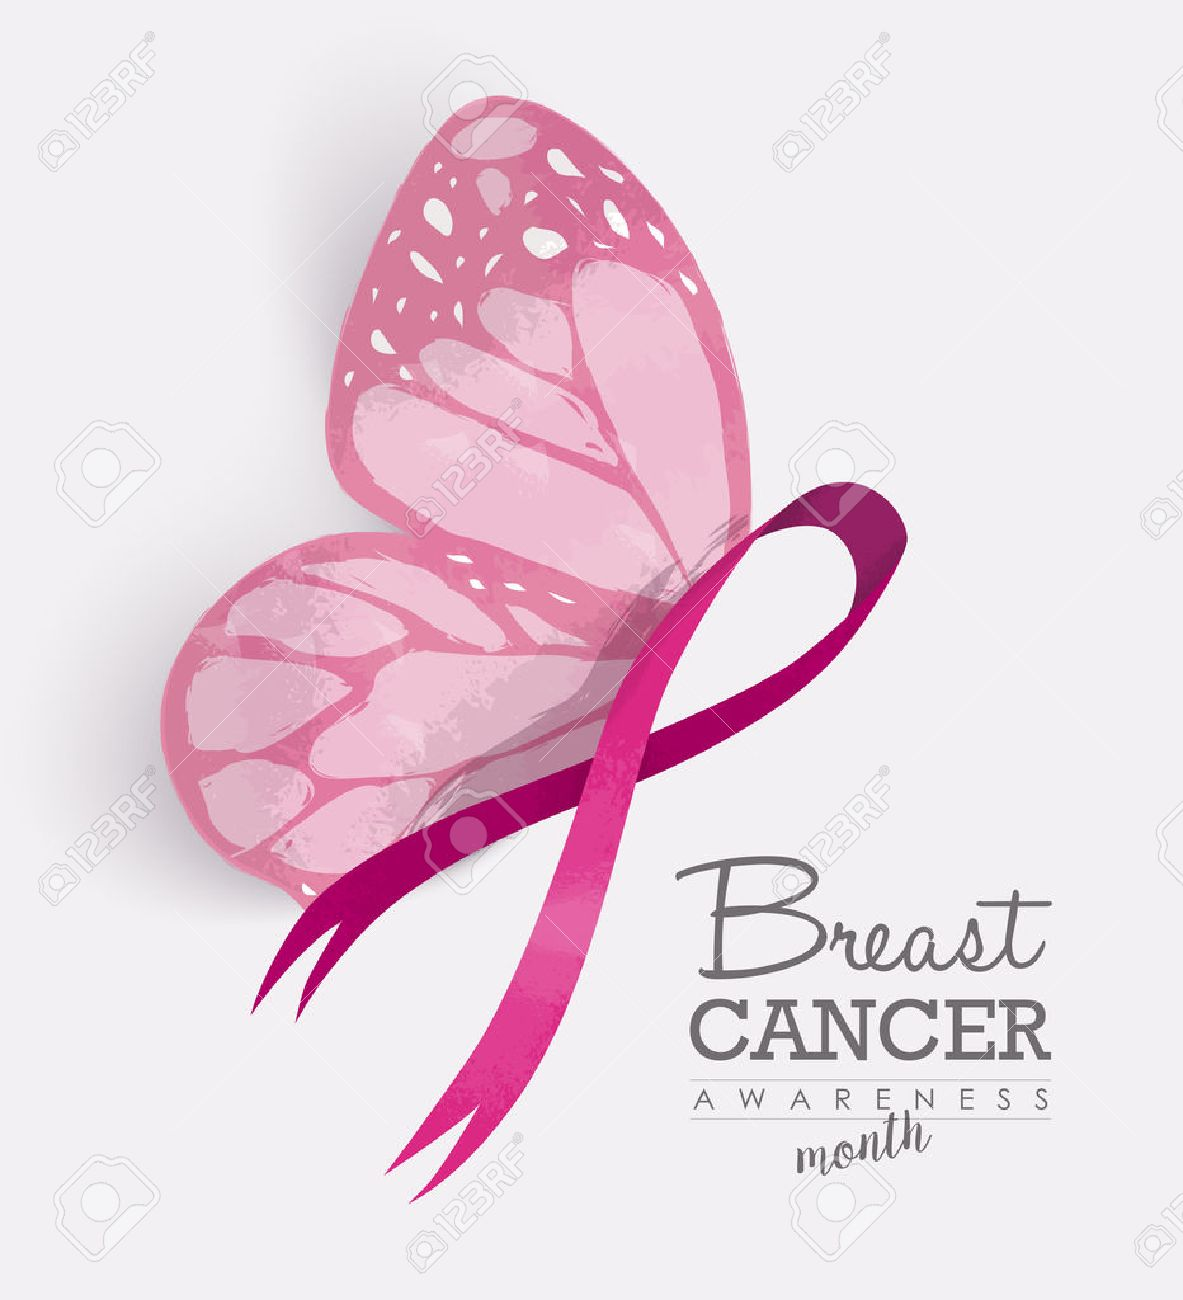 Breast Cancer Stock Photos Royalty Free Breast Cancer Images